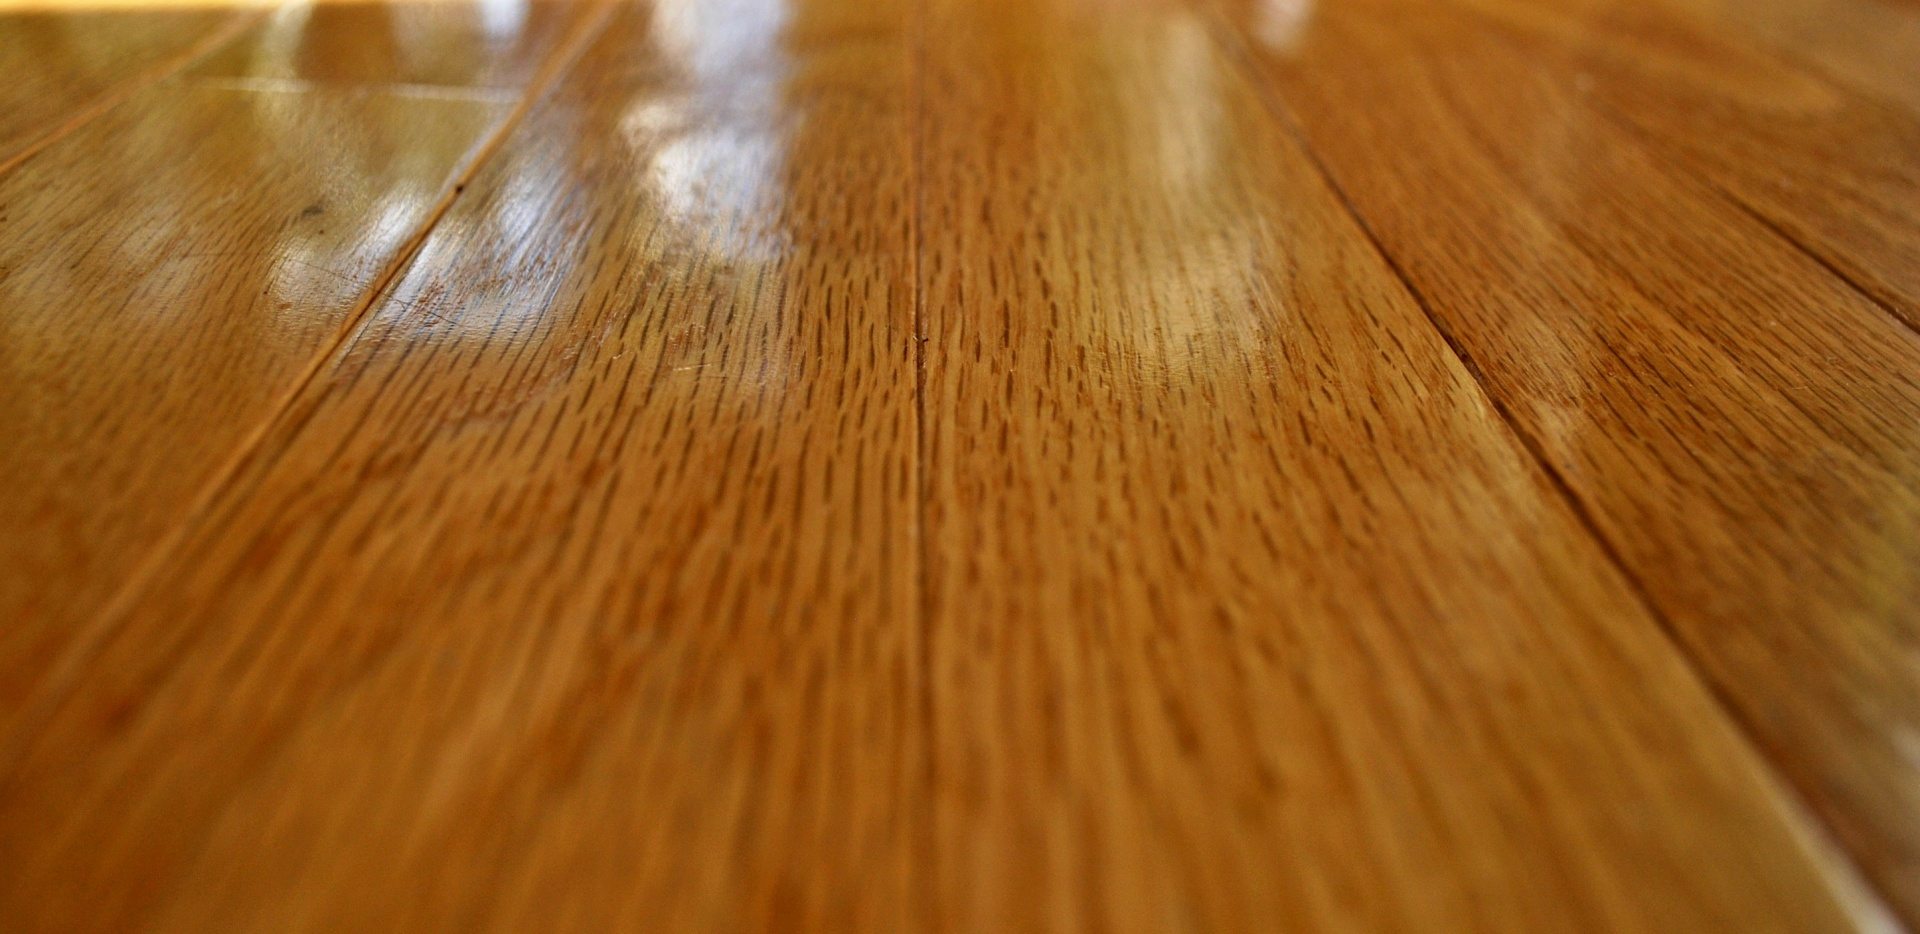 image - The Do's and Don'ts of Laminate Floor Care